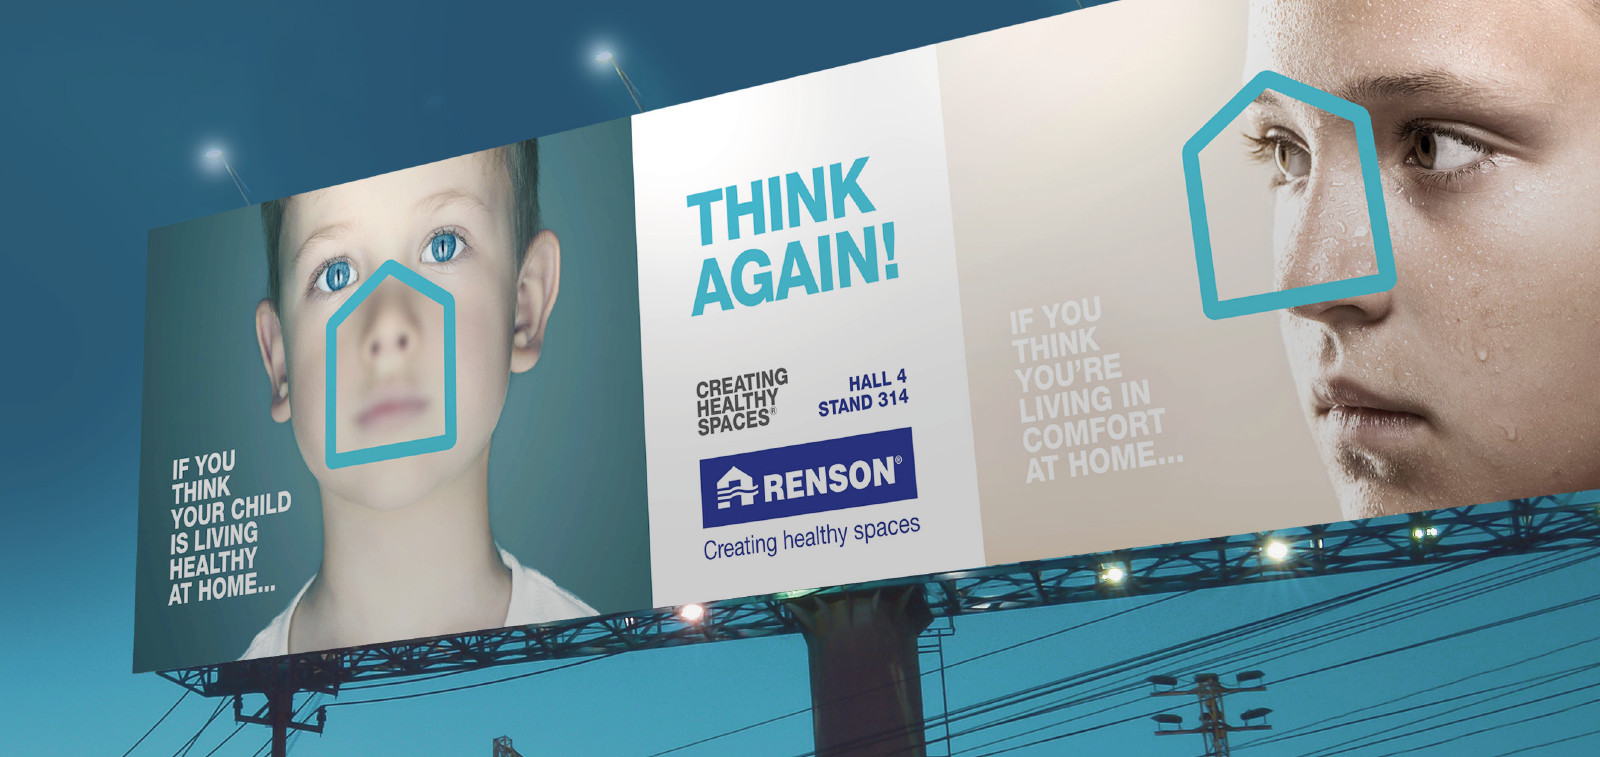 Renson billboard